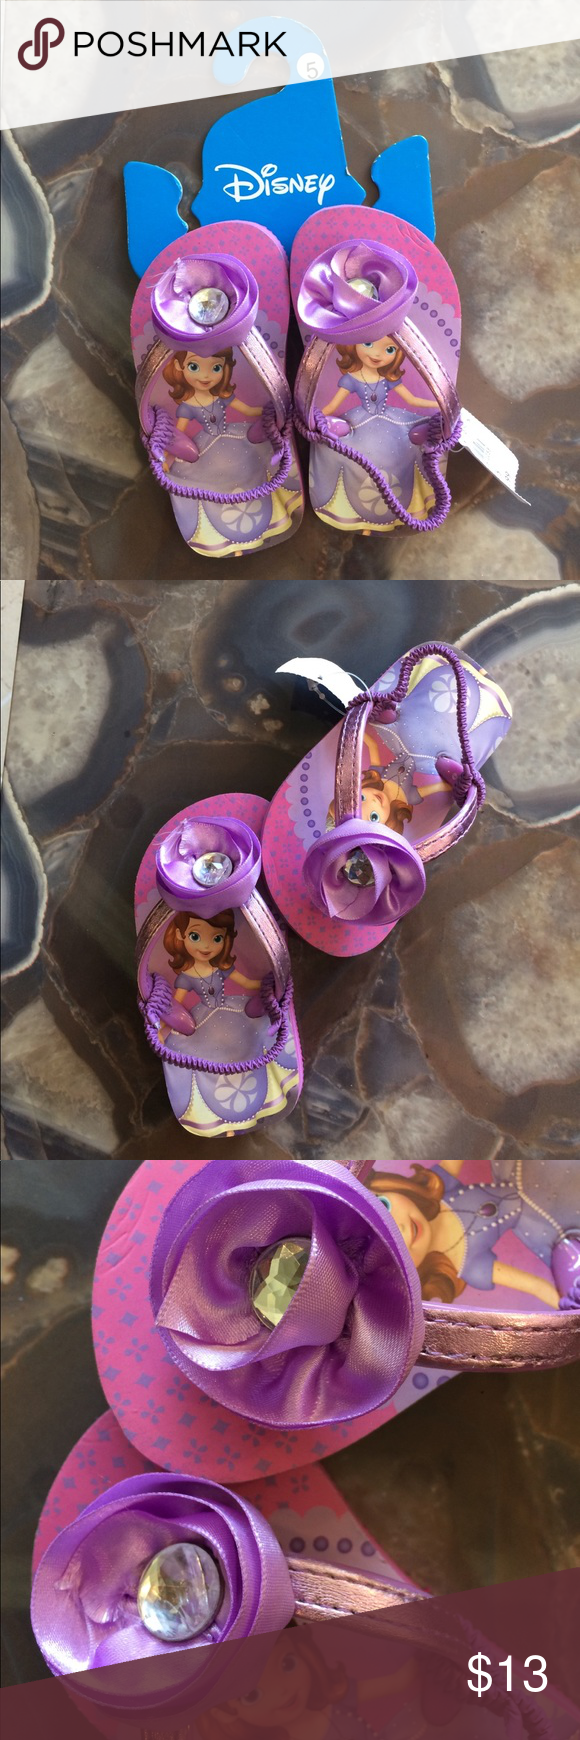 b8f8308d29af NWT- DISNEY PRINCESS SANDALS BY PAYLESS! Pretty lavender now with JEWLED  center! Purple elastic strap on back! Never worn! Disney Shoes Sandals   Flip  Flops